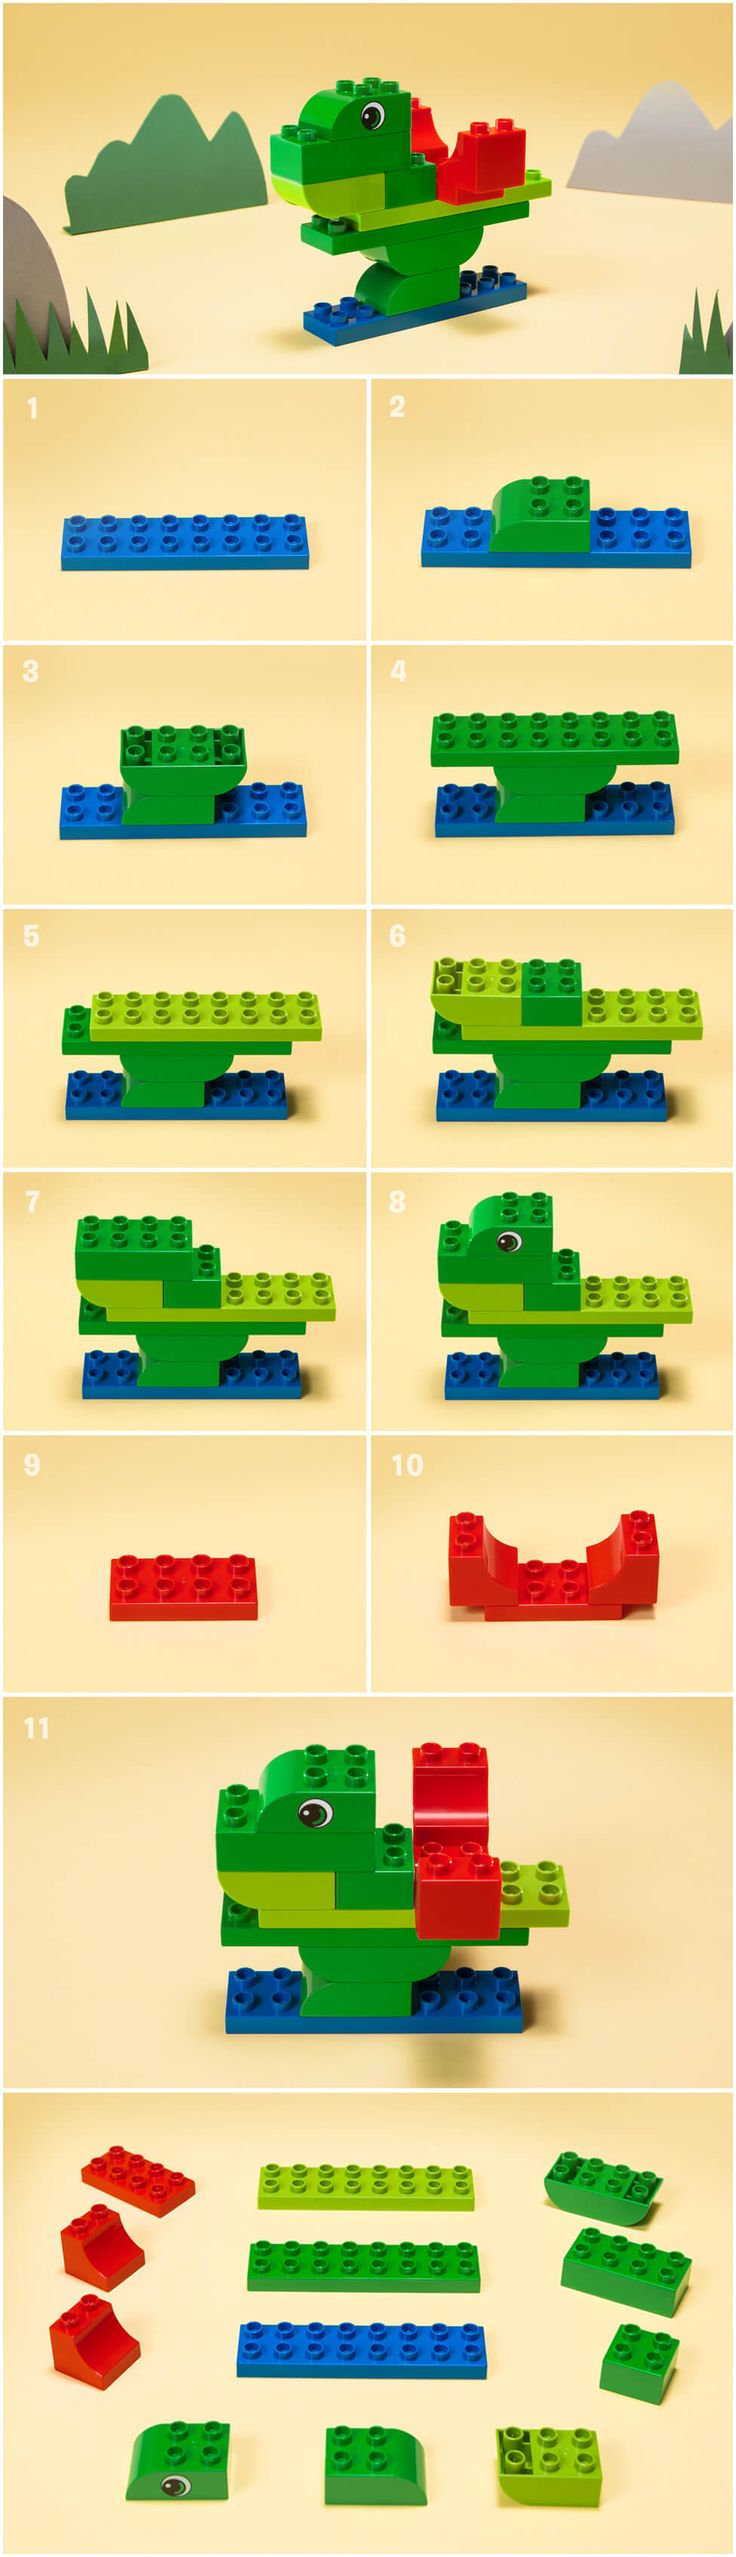 The unlikely way to help with tantrums - Articles - Family LEGO.com